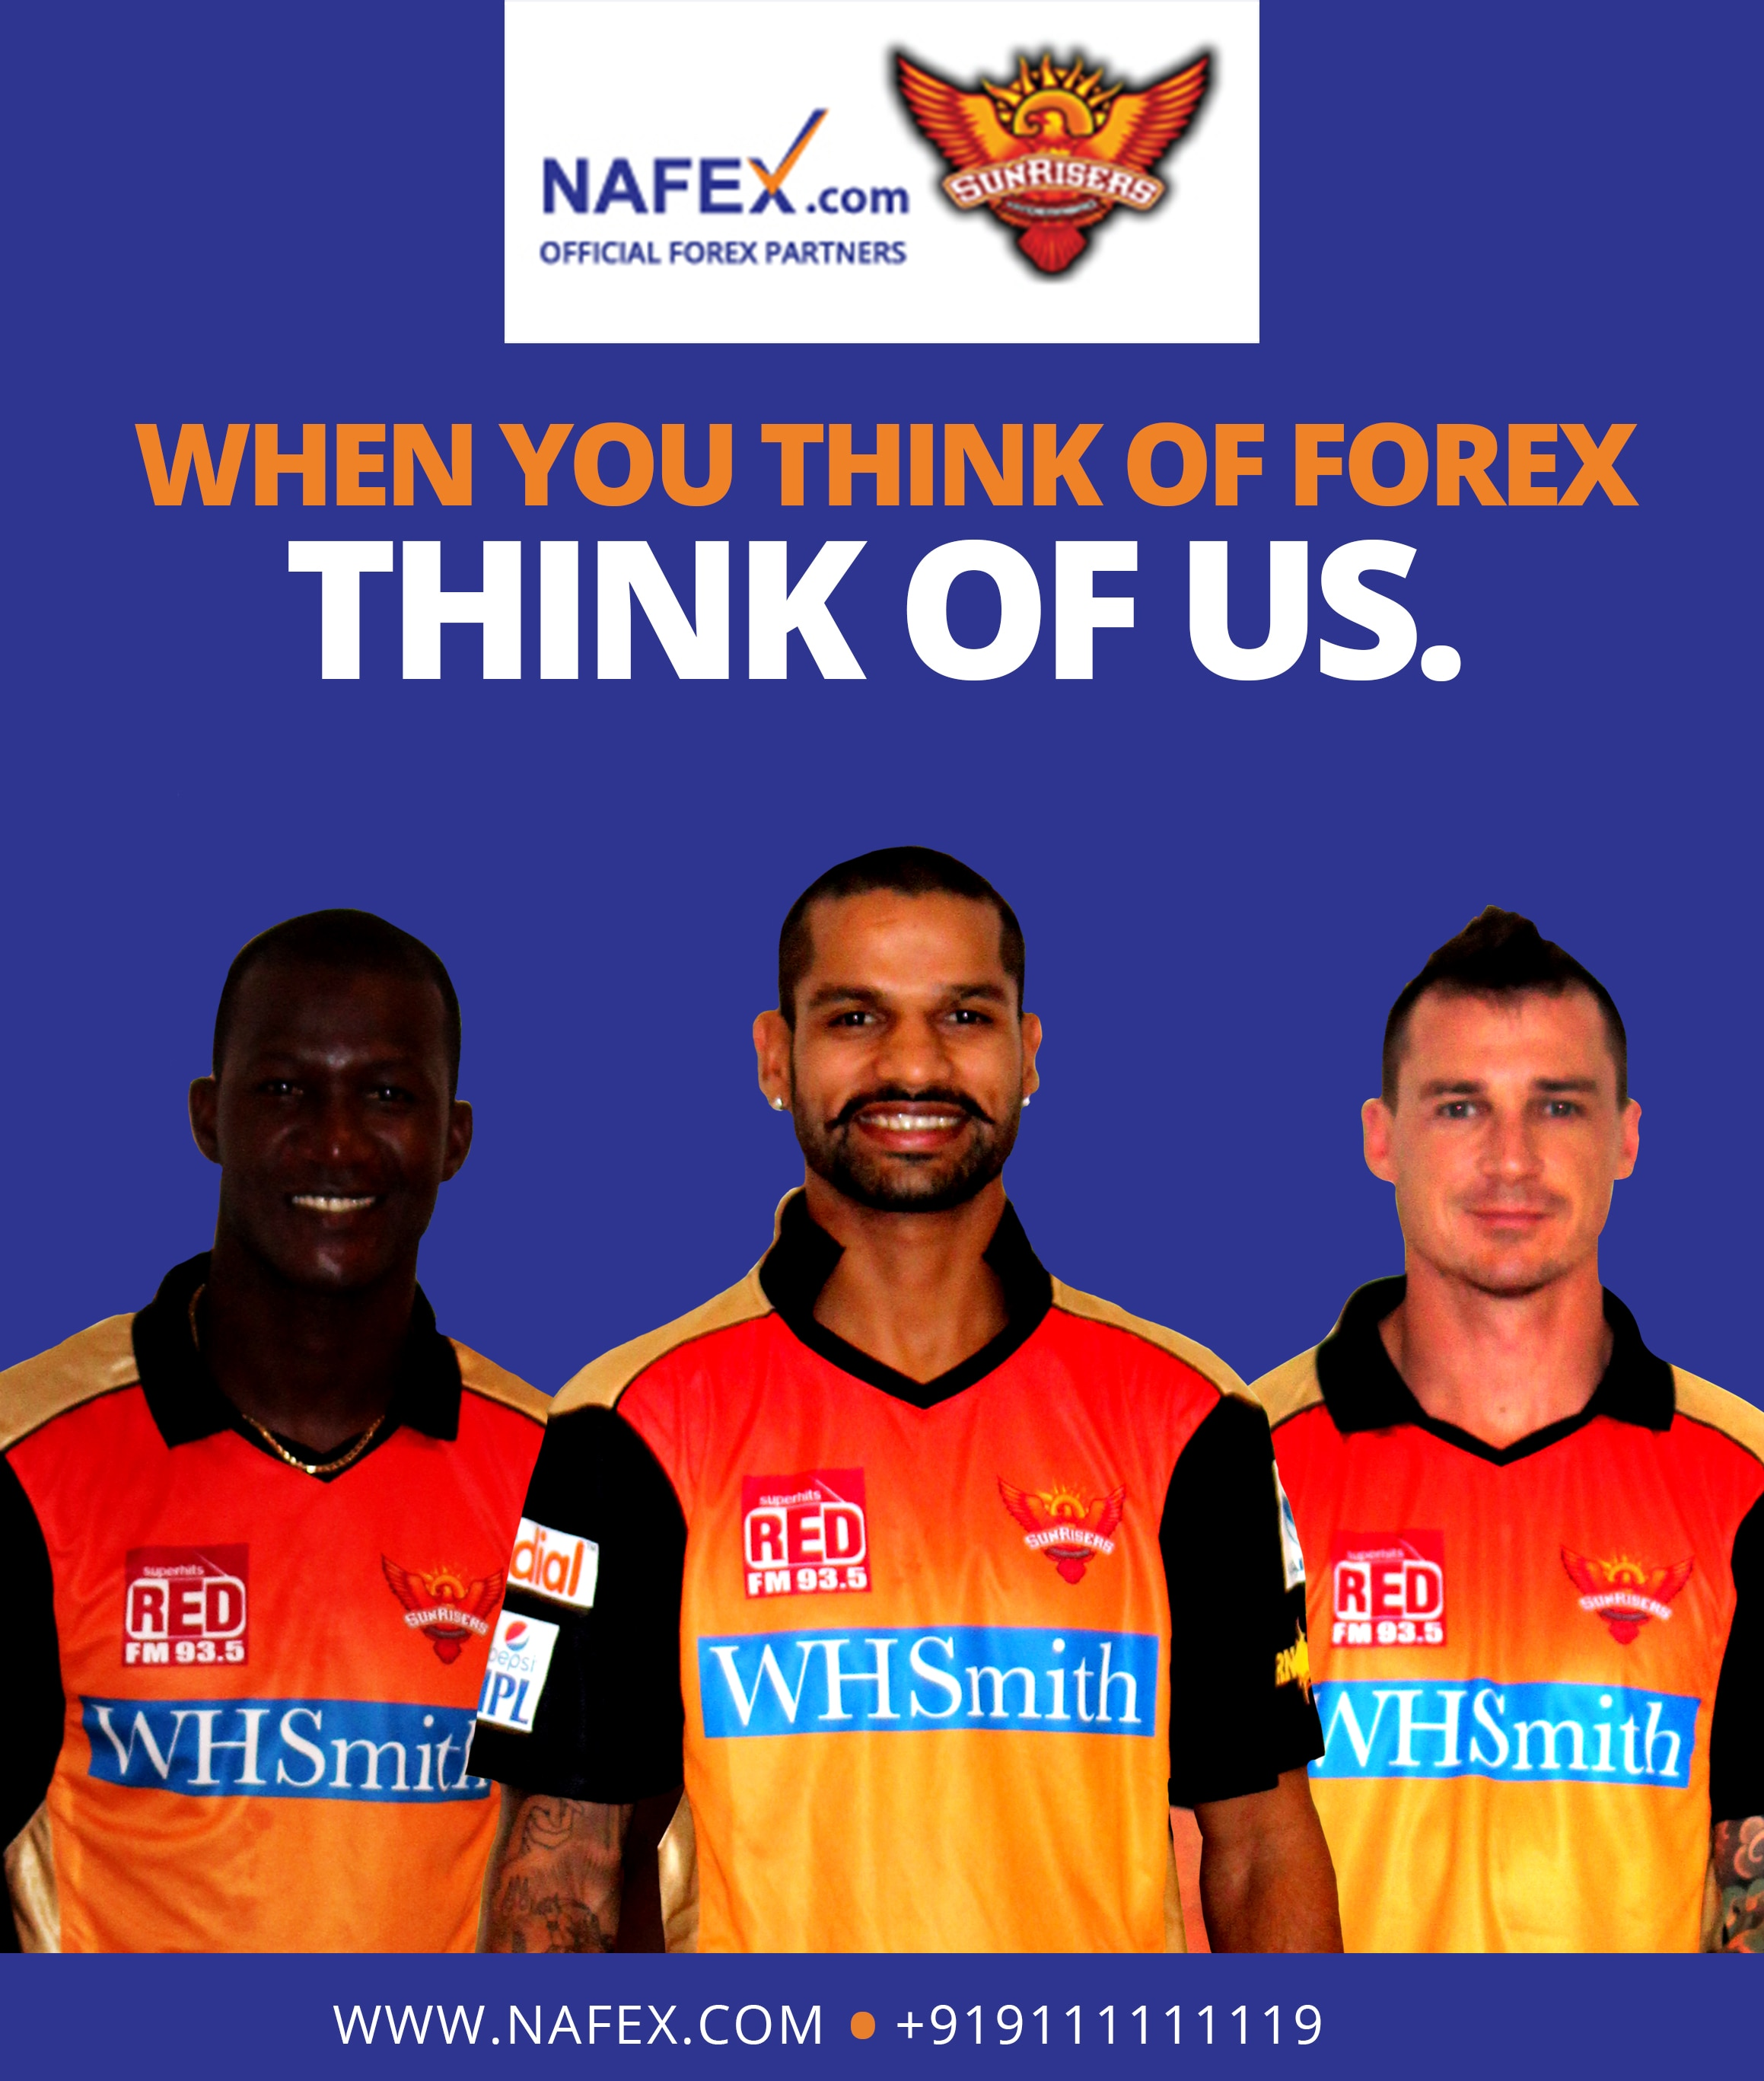 Nafex - Karkhana  Foreign Currency Exchange Dealers Agents Karkhana, Online Travellers Cheque & Forex Prepaid Card